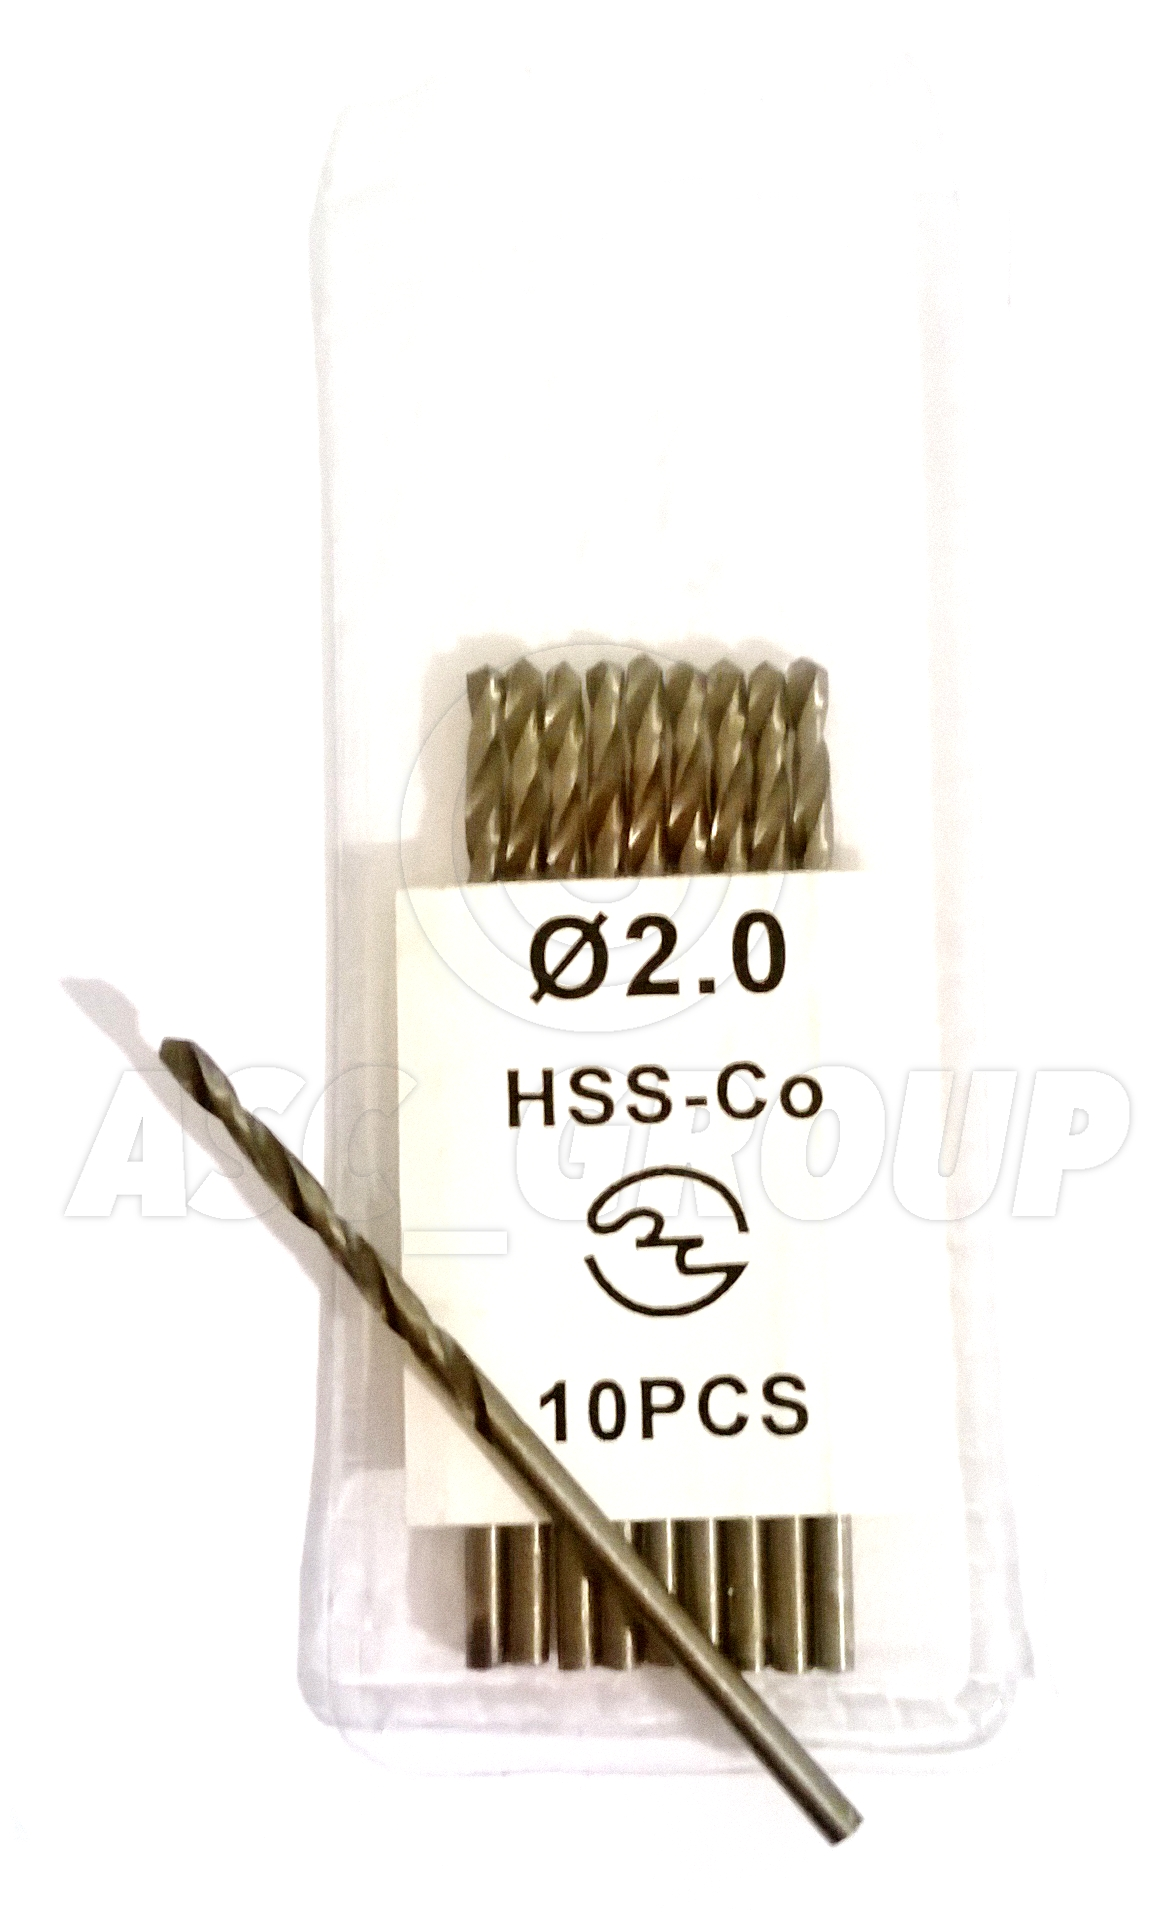 10 x 2mm professionell bohrer aufstecker hss co kobalt metall kunststoff holz ebay. Black Bedroom Furniture Sets. Home Design Ideas